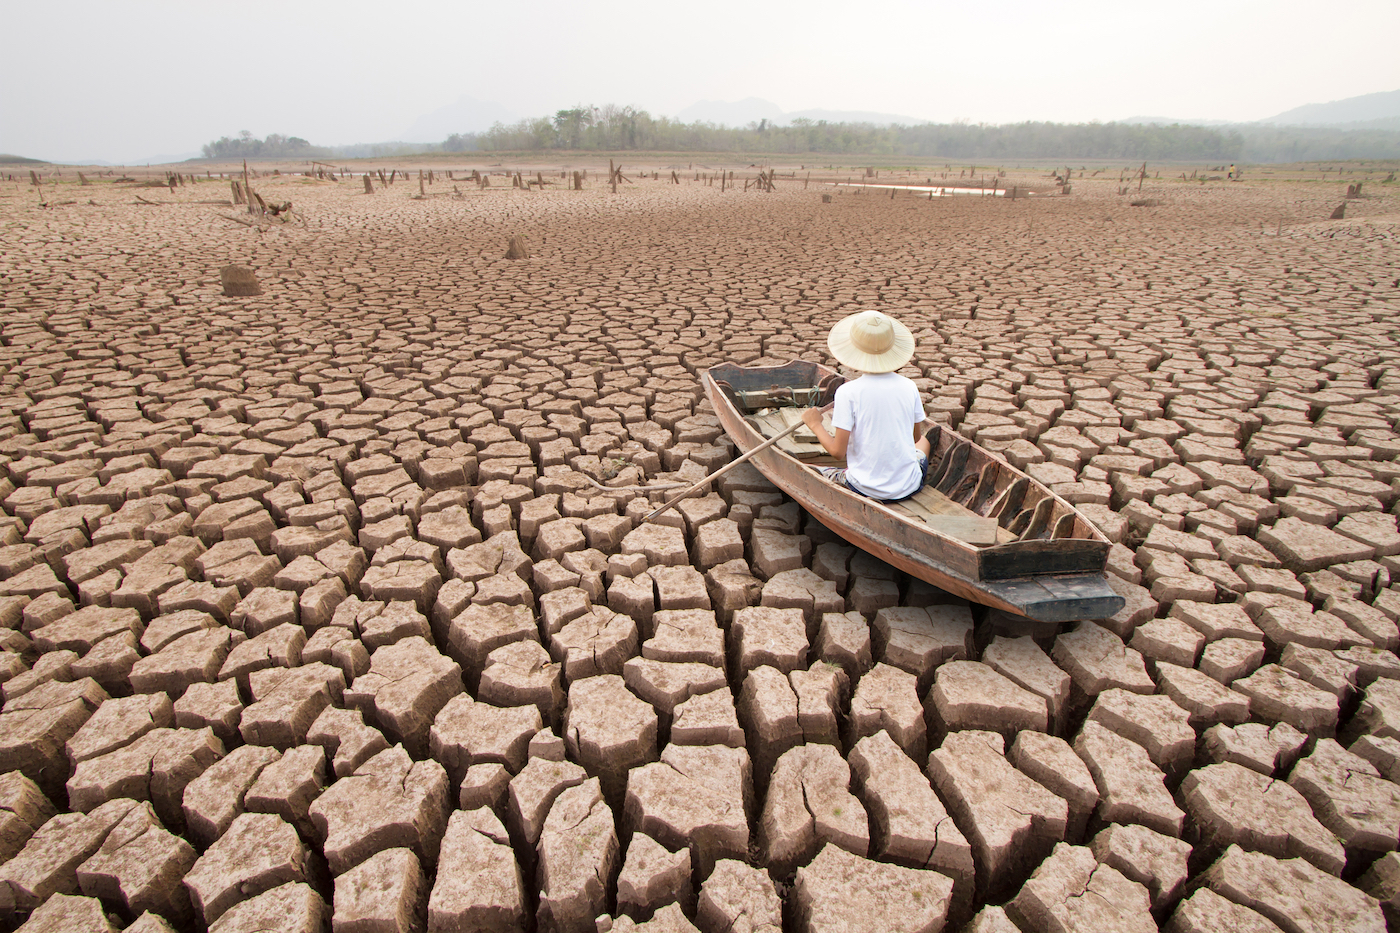 If global warming hits 2 degrees Celsius, over 25 percent of the world will get less moisture and be more prone to drought and wildfires.